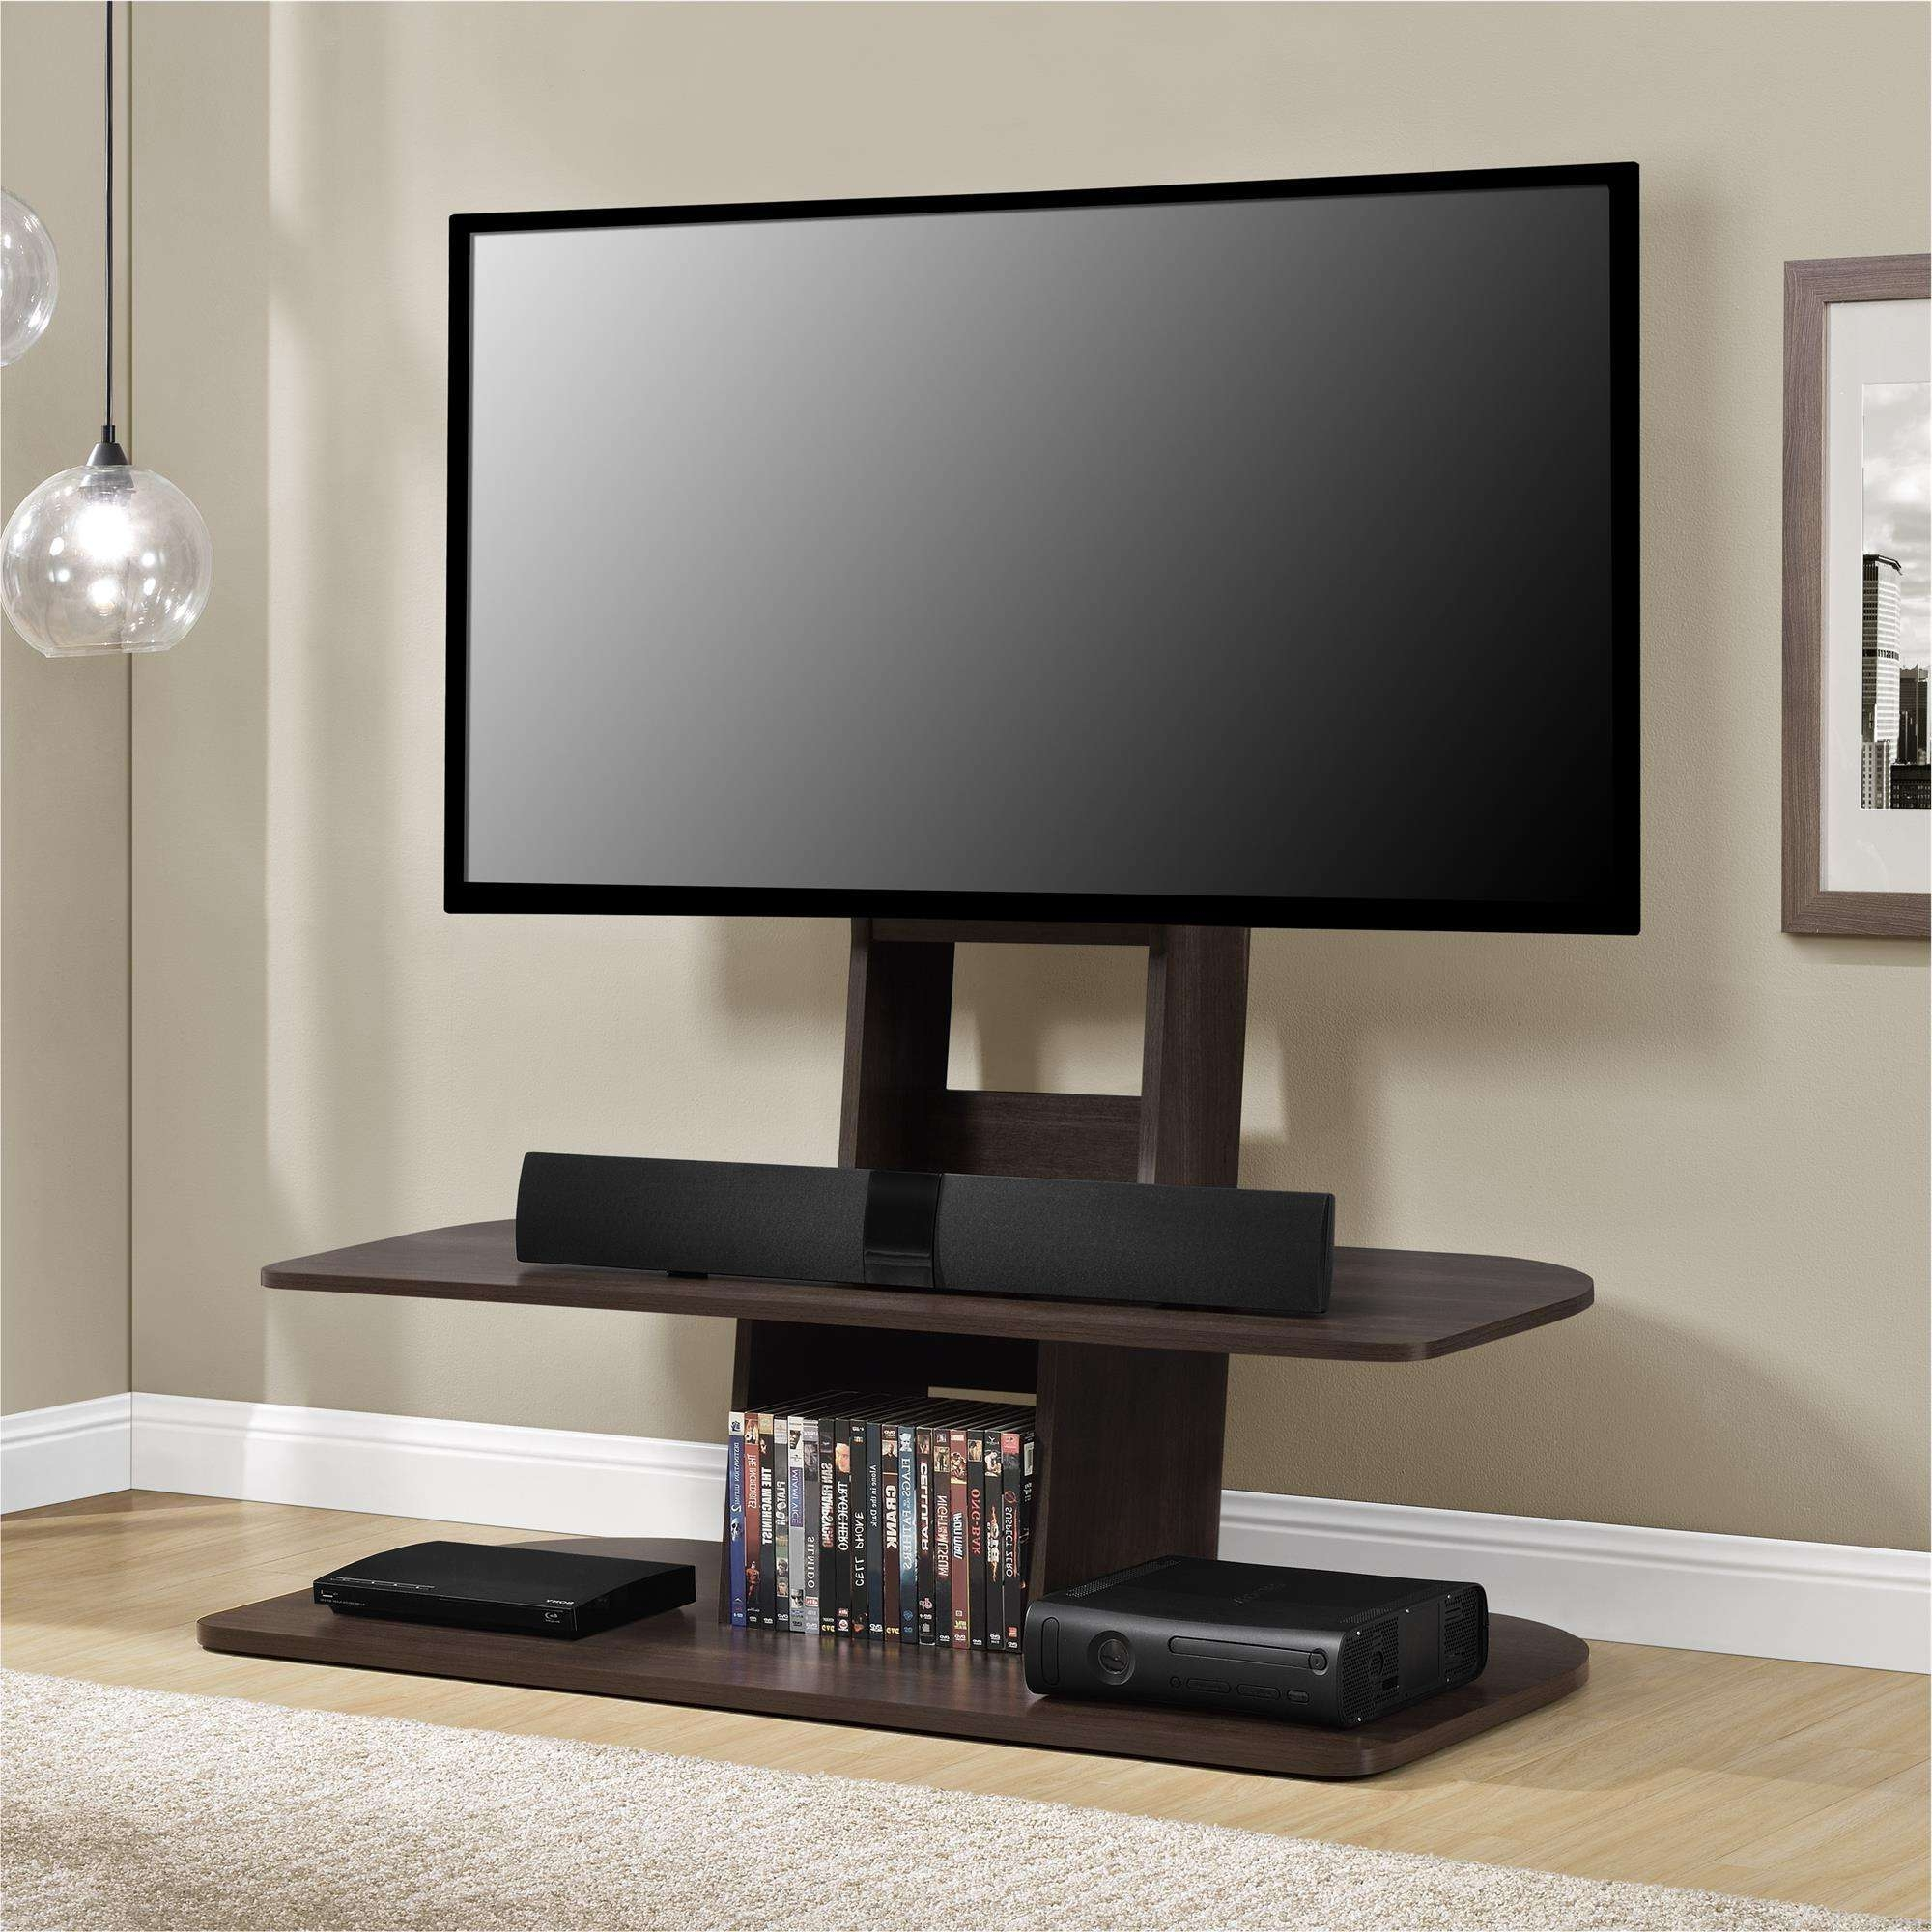 Tv : Engaging 65 Inch Tv Stands With Integrated Mount Gripping 65 For 65 Inch Tv Stands With Integrated Mount (View 11 of 15)